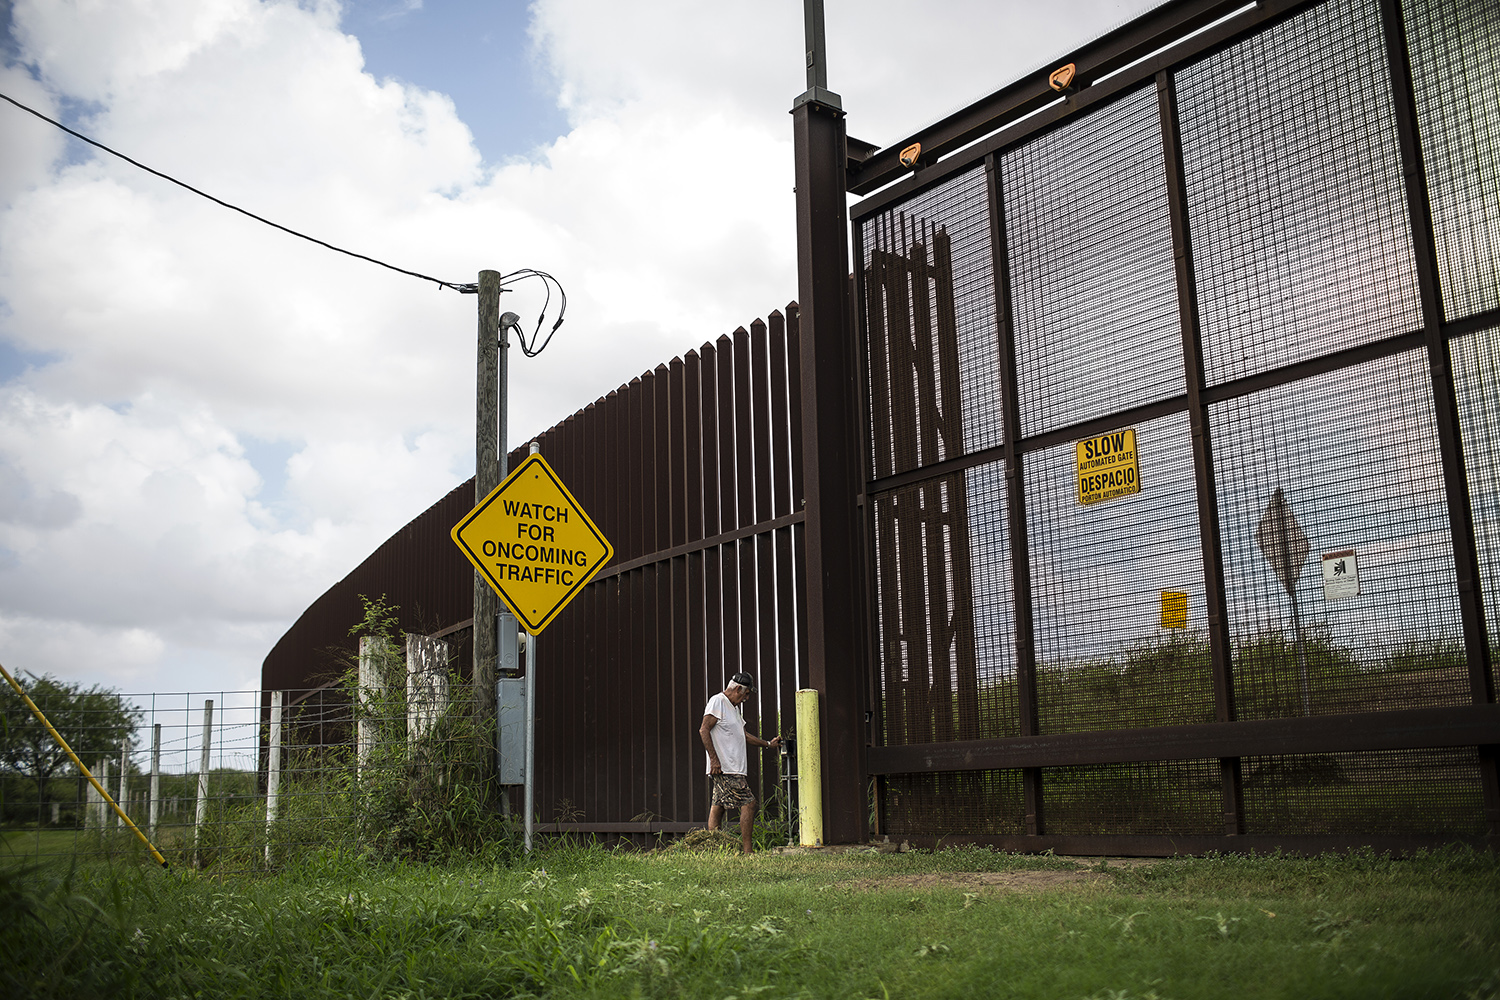 Juan Cavazos enters the code for the gate at the borderwall cutting through his property on Oklahoma Ave. in Brownsville, TX on Aug. 10, 2017.